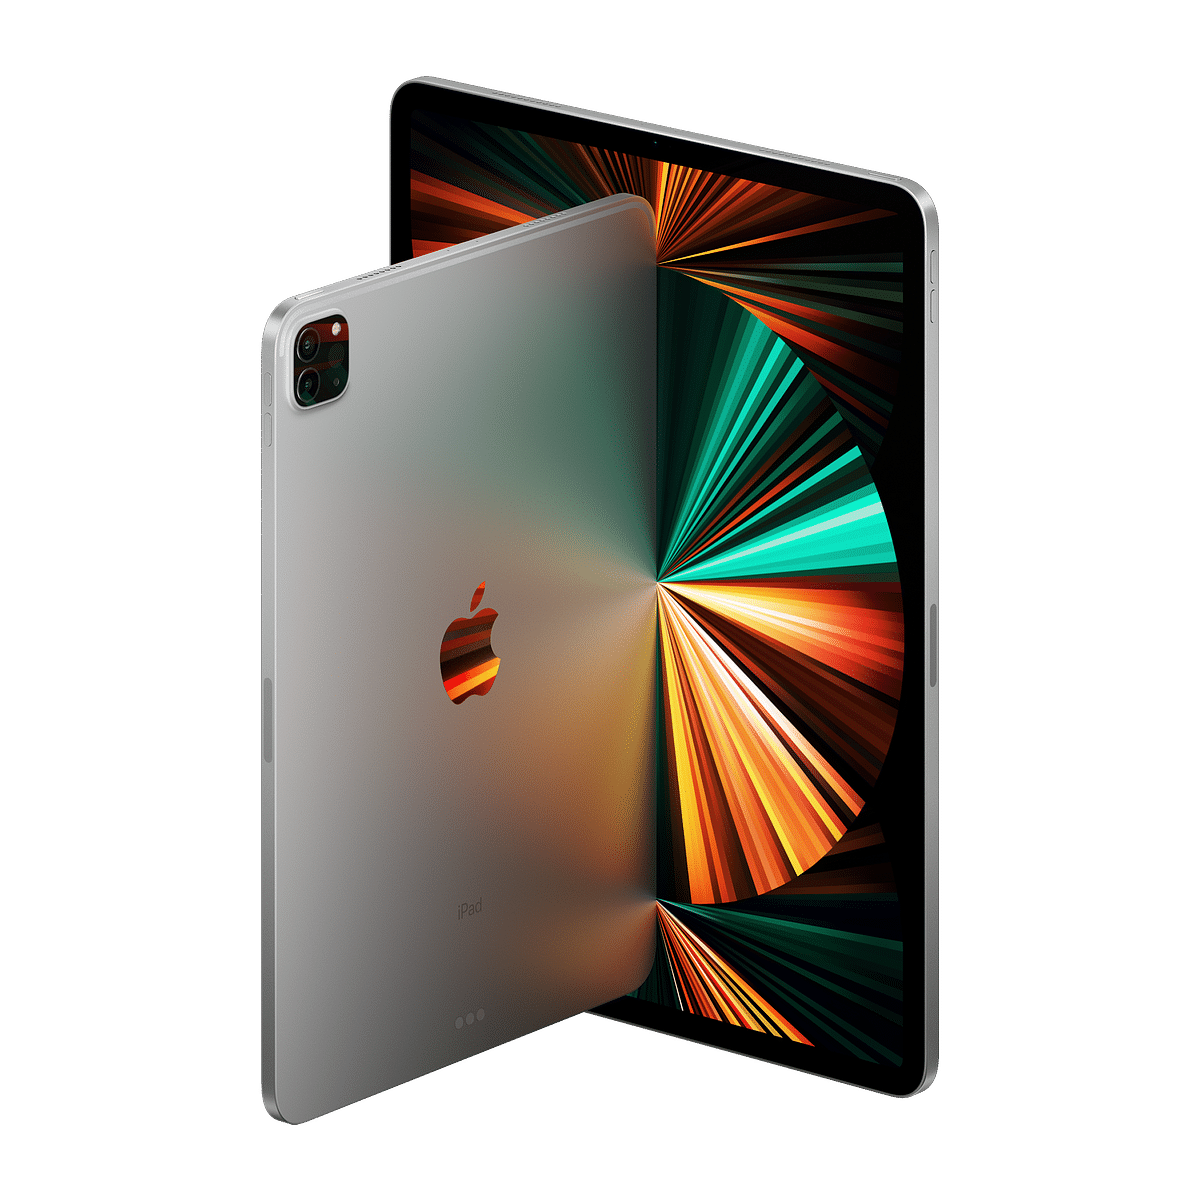 The iPad Pro with M1 chip